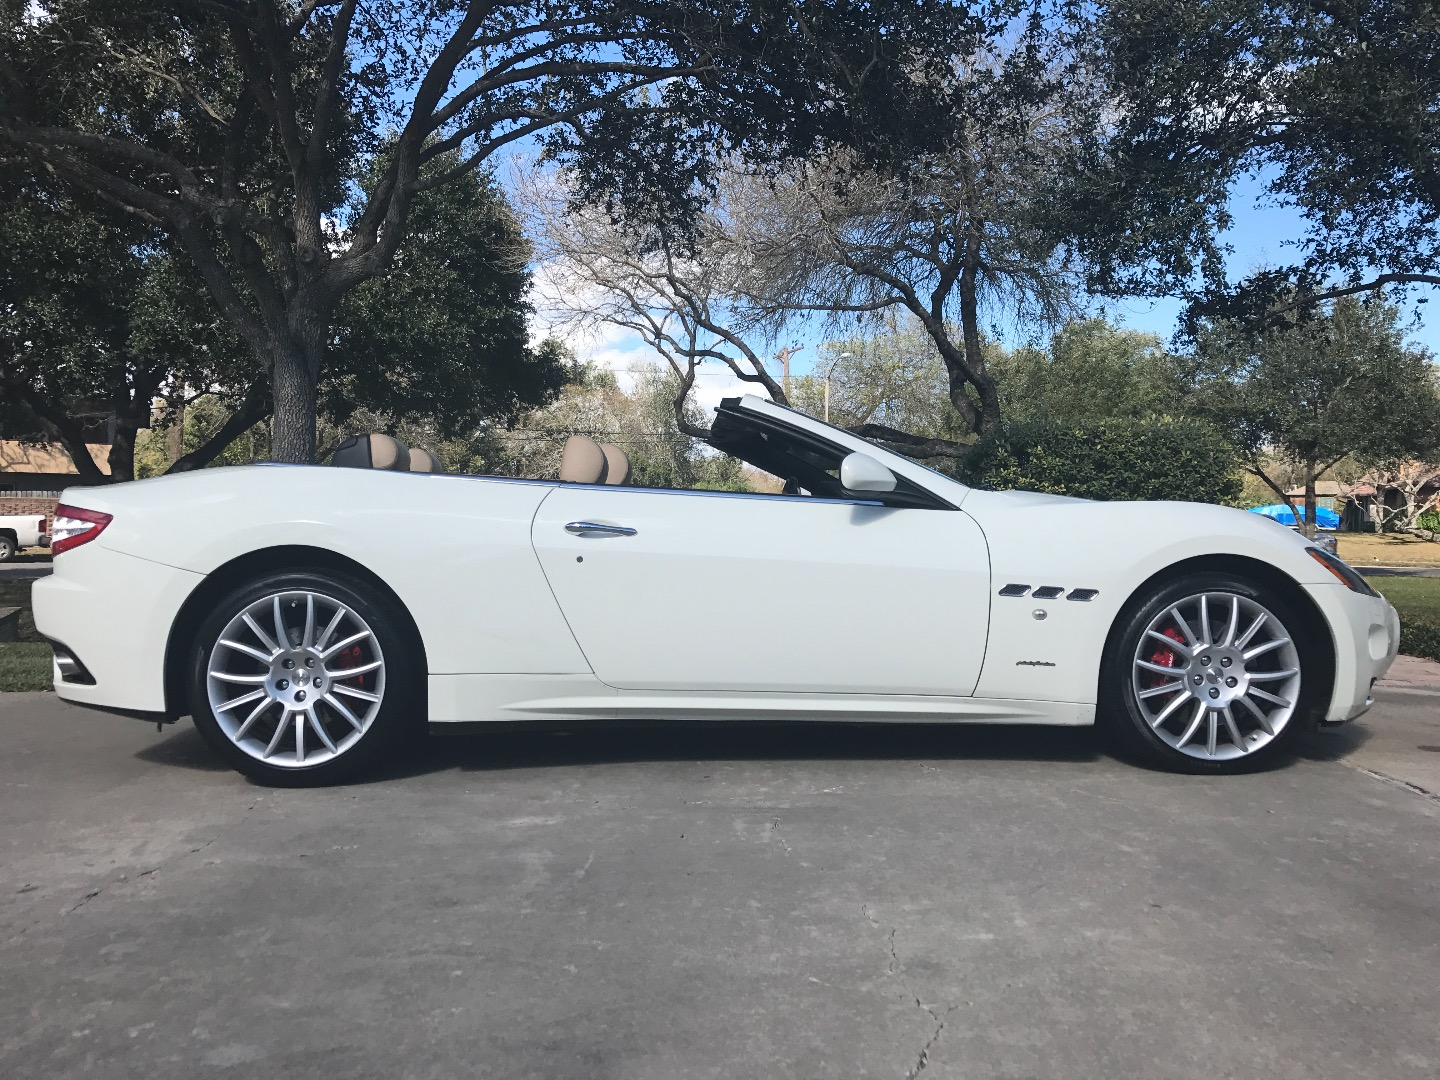 2013 maserati granturismo gt convertible for sale in corpus christi tx global autosports. Black Bedroom Furniture Sets. Home Design Ideas